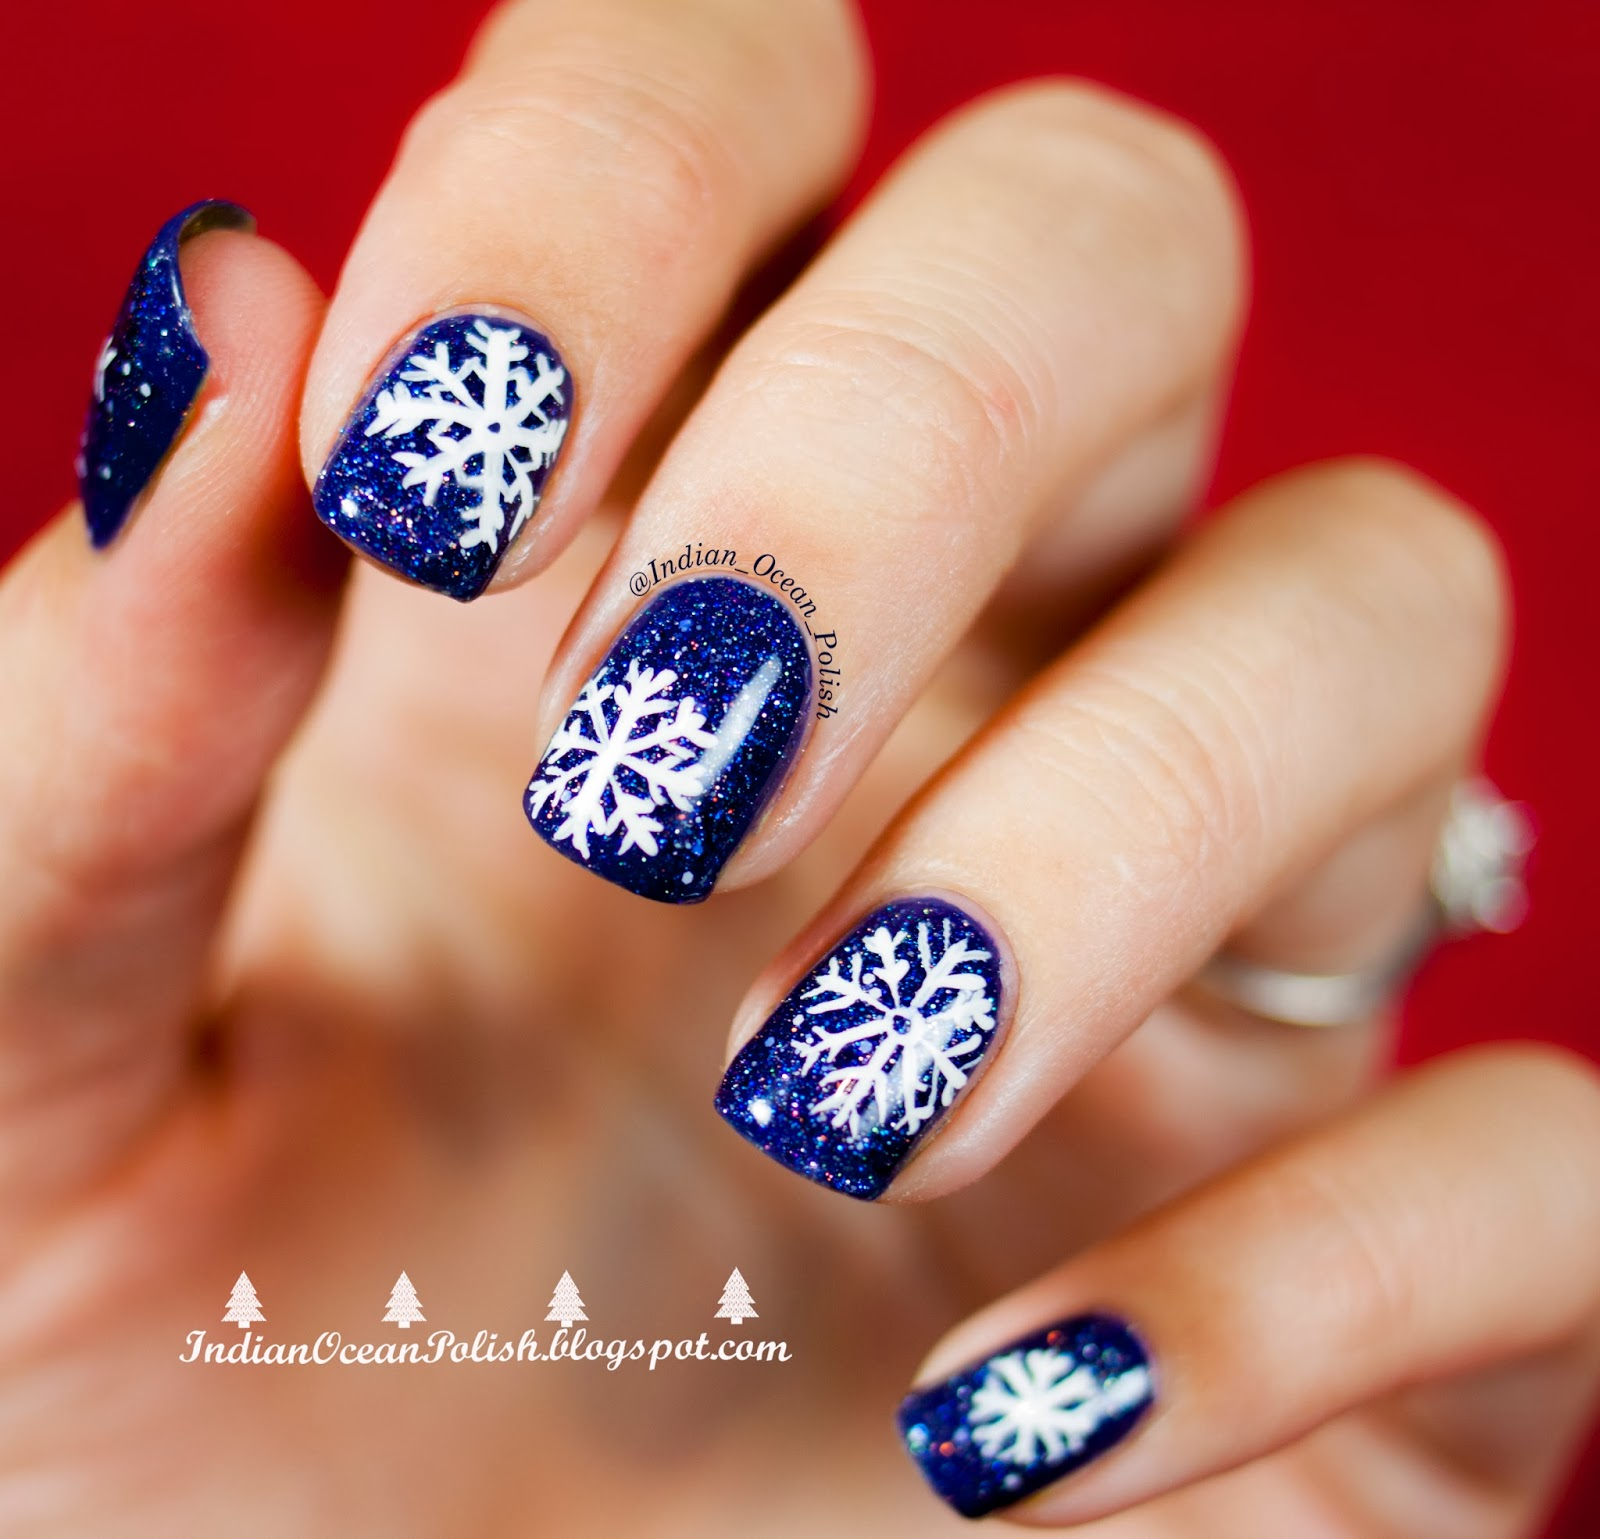 Indian Ocean Polish: Christmas 2013 Nail Art Ideas: Simple